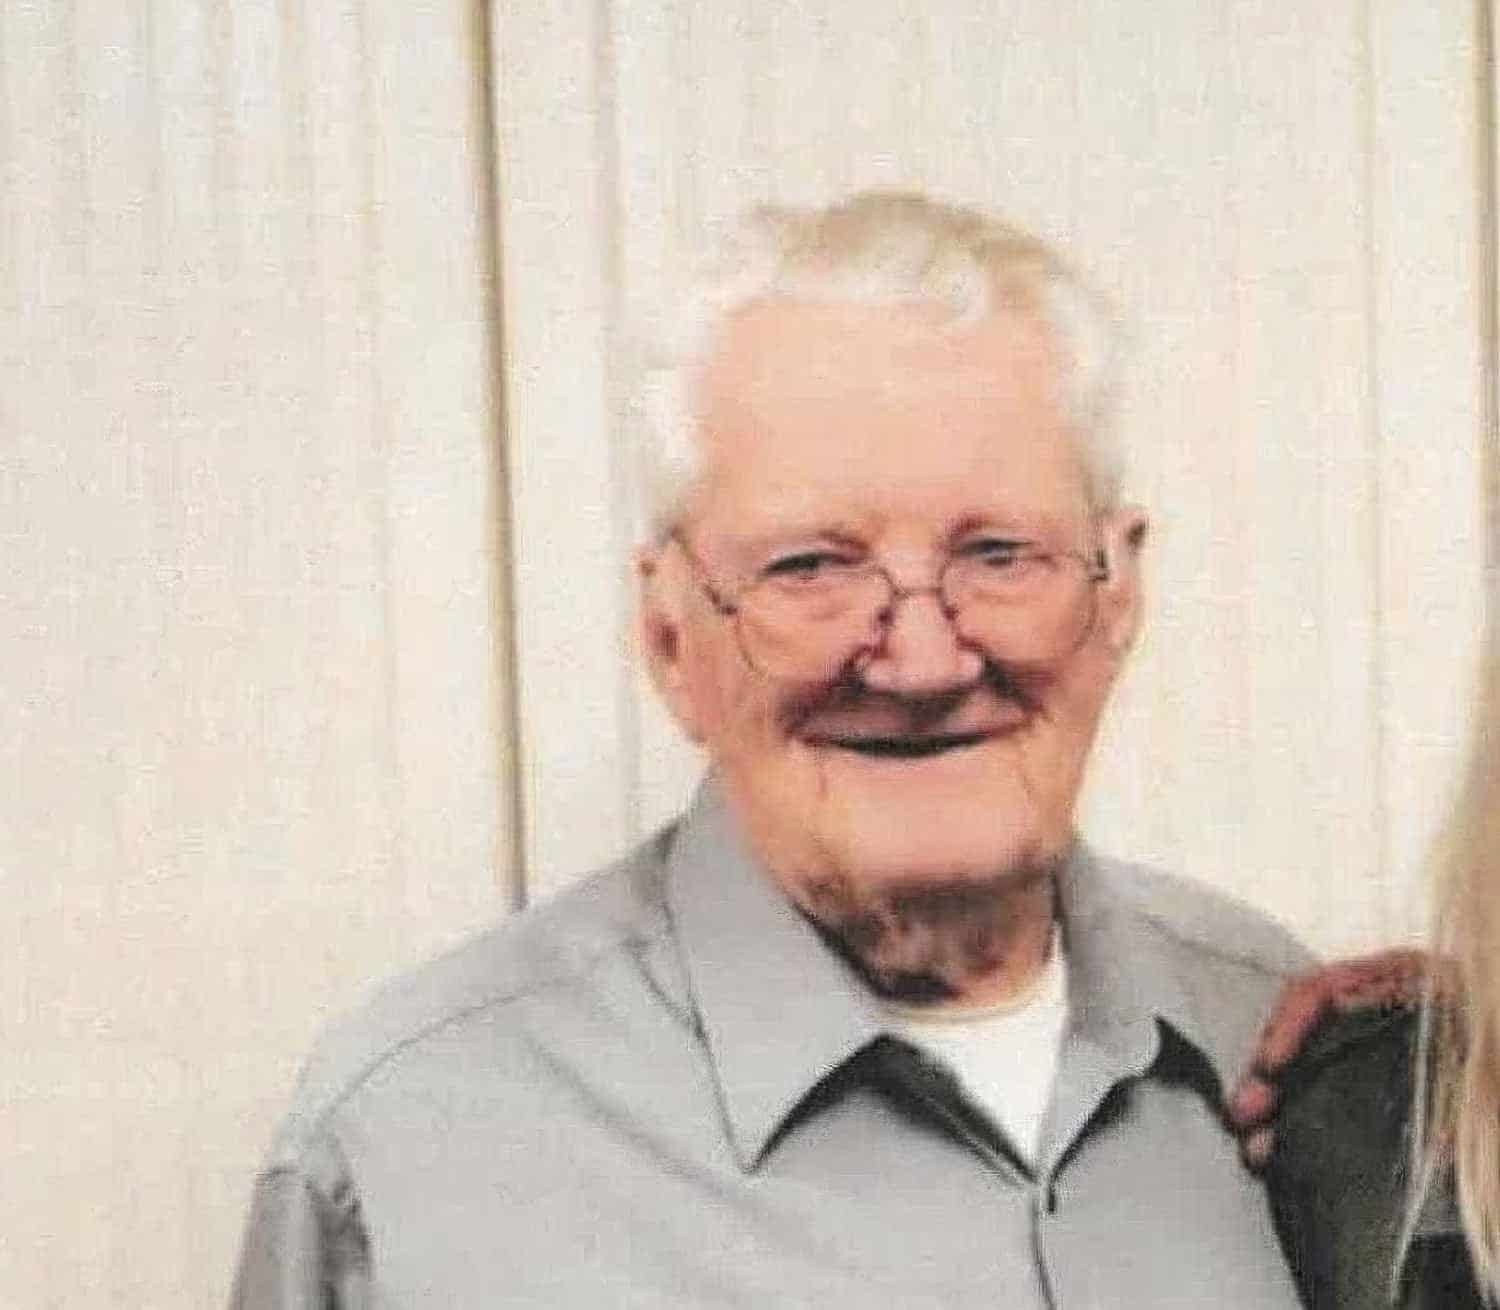 The Centralia Police Department is continuing to search for a 93-year-old man reported missing earlier this week. Drones will be used in the search efforts.